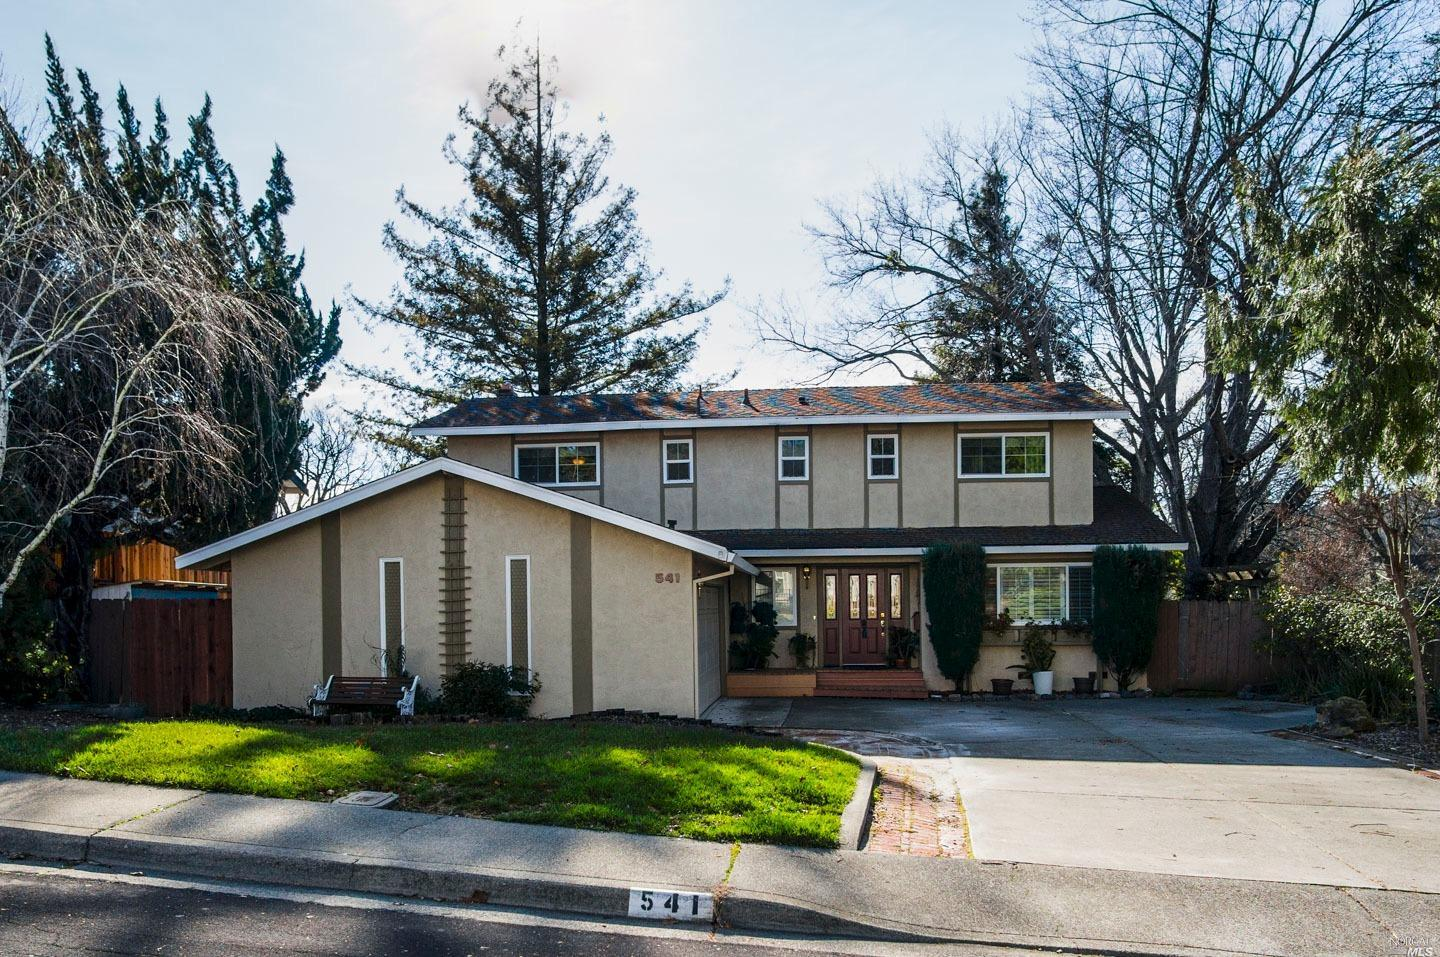 541 Wellington Way, Vacaville, CA